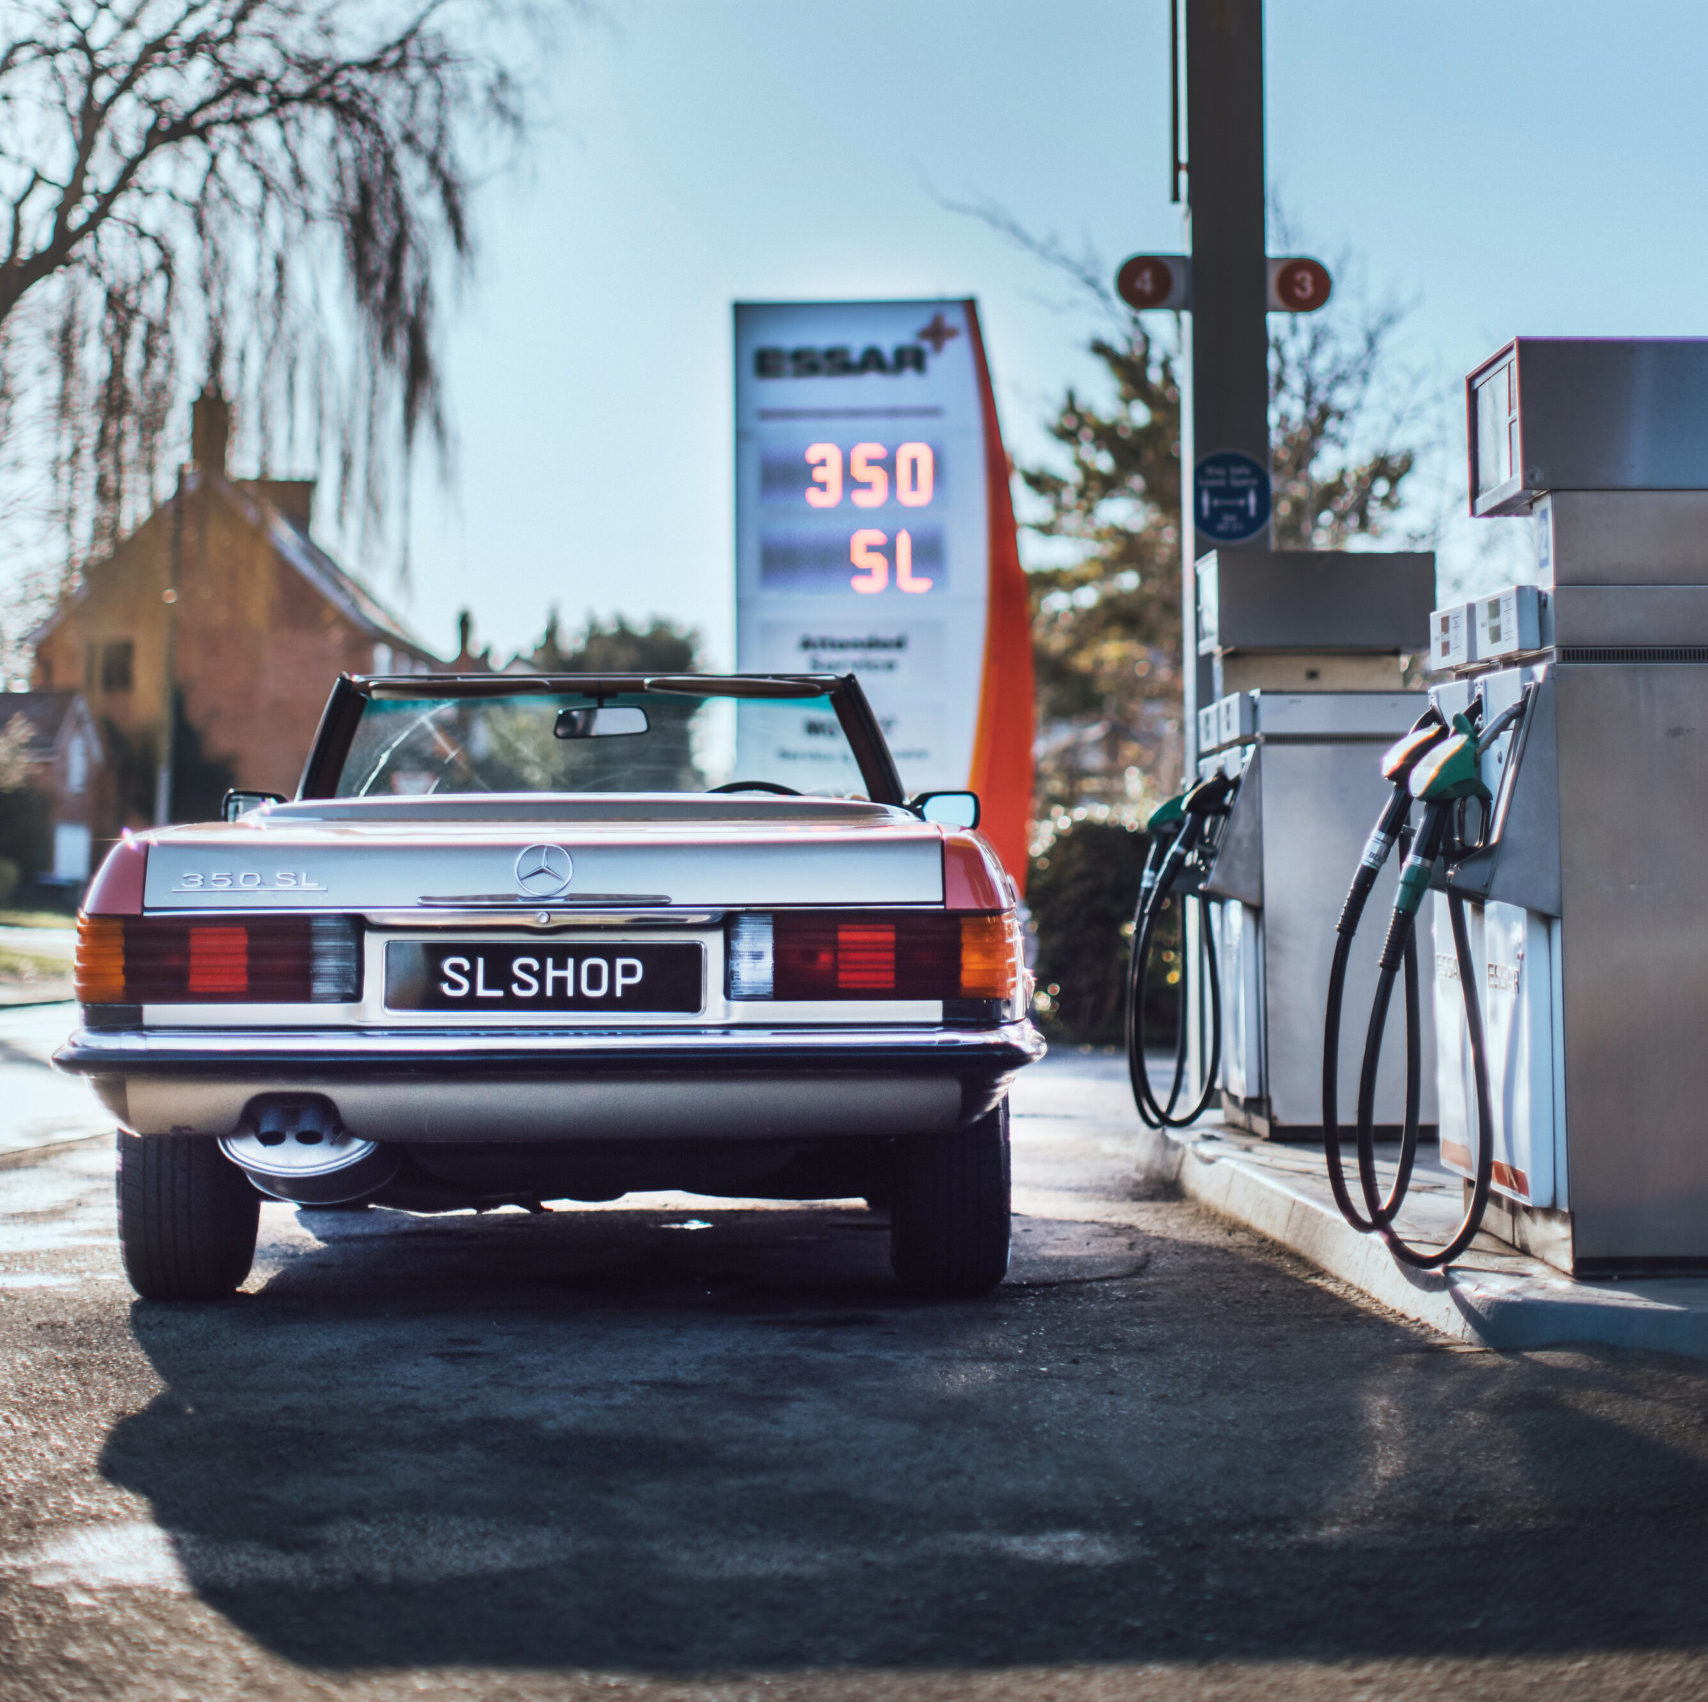 SLSHOP's 1971 Mercedes R107 350 SL standing proud a classic-style petrol station in the UK.